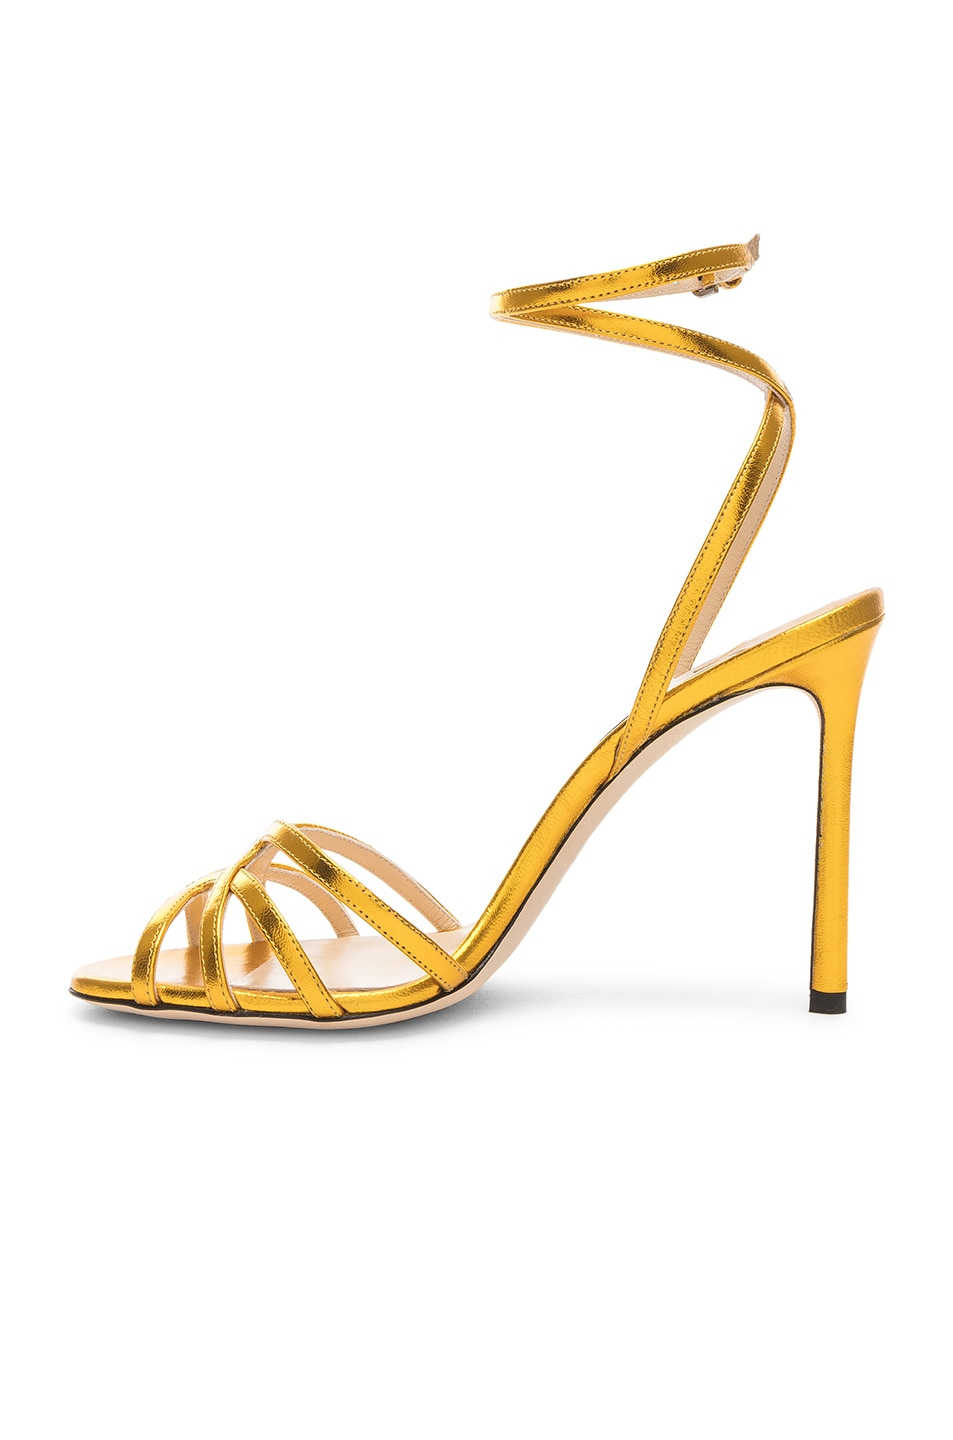 Image 5 of Jimmy Choo Leather Mimi 100 Sandal in Saffron